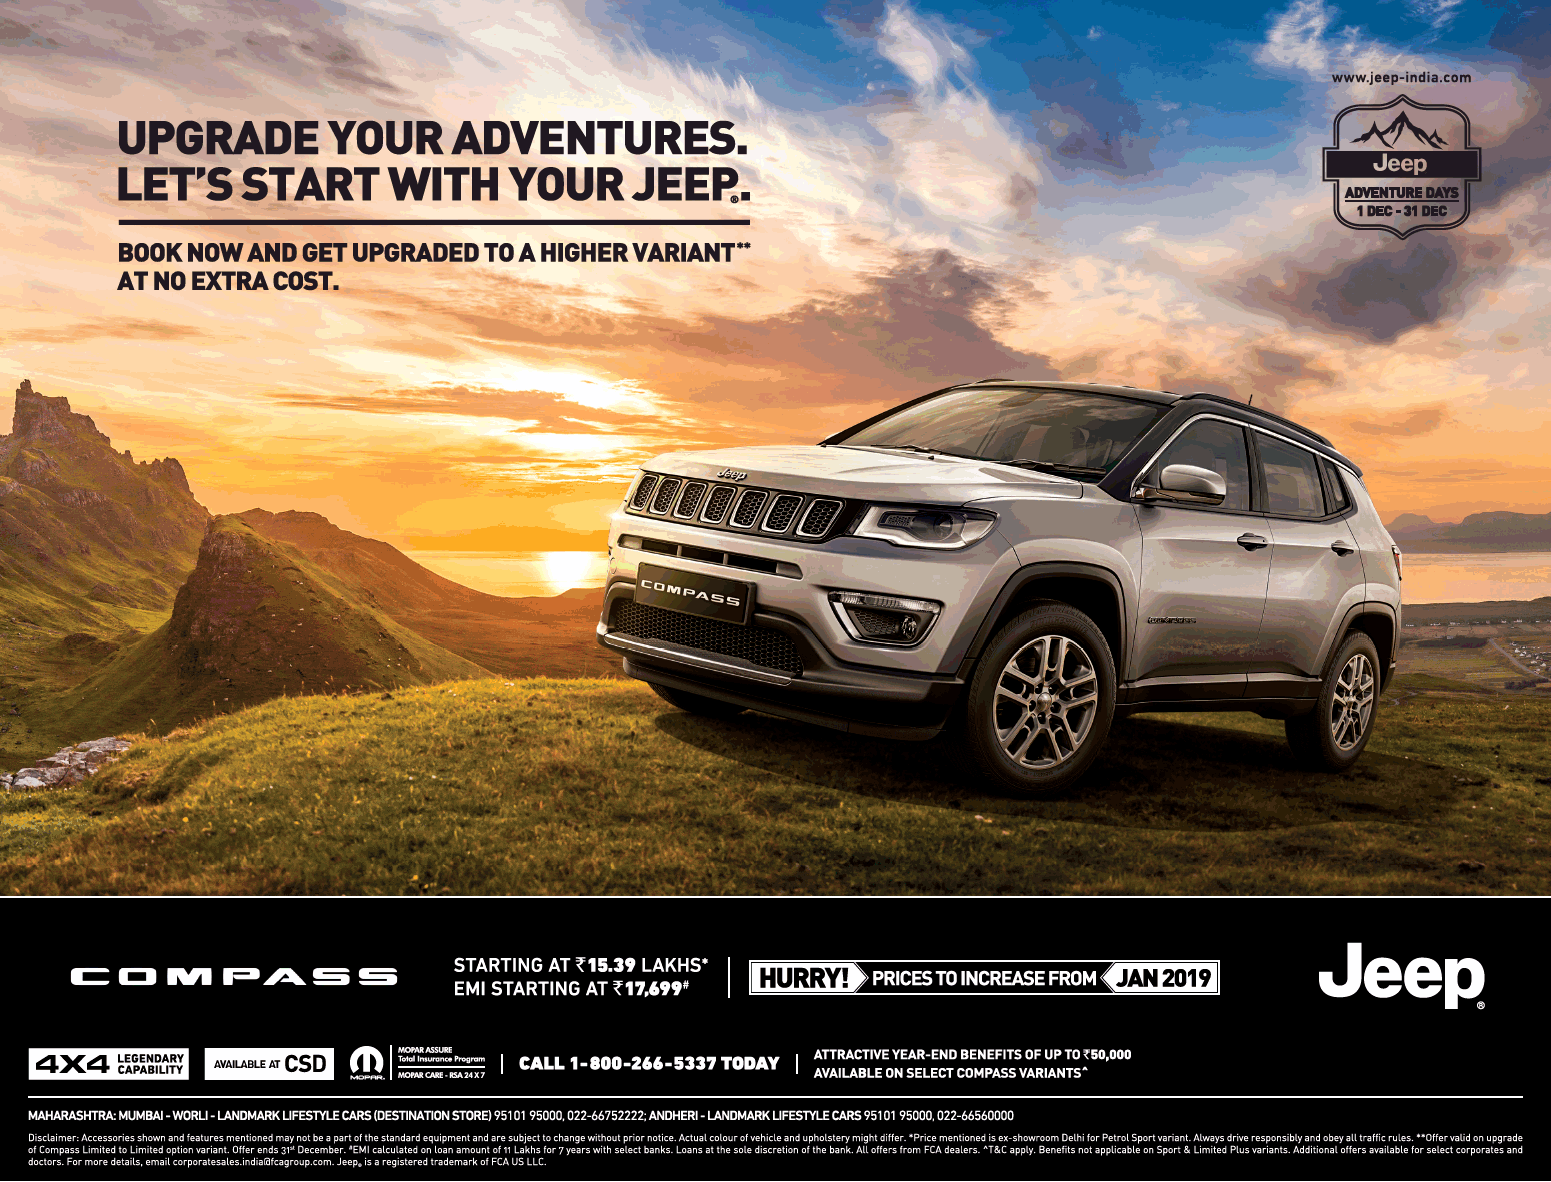 Jeep Car Compass Upgrade Your Adventures Ad In Times Of India Mumbai